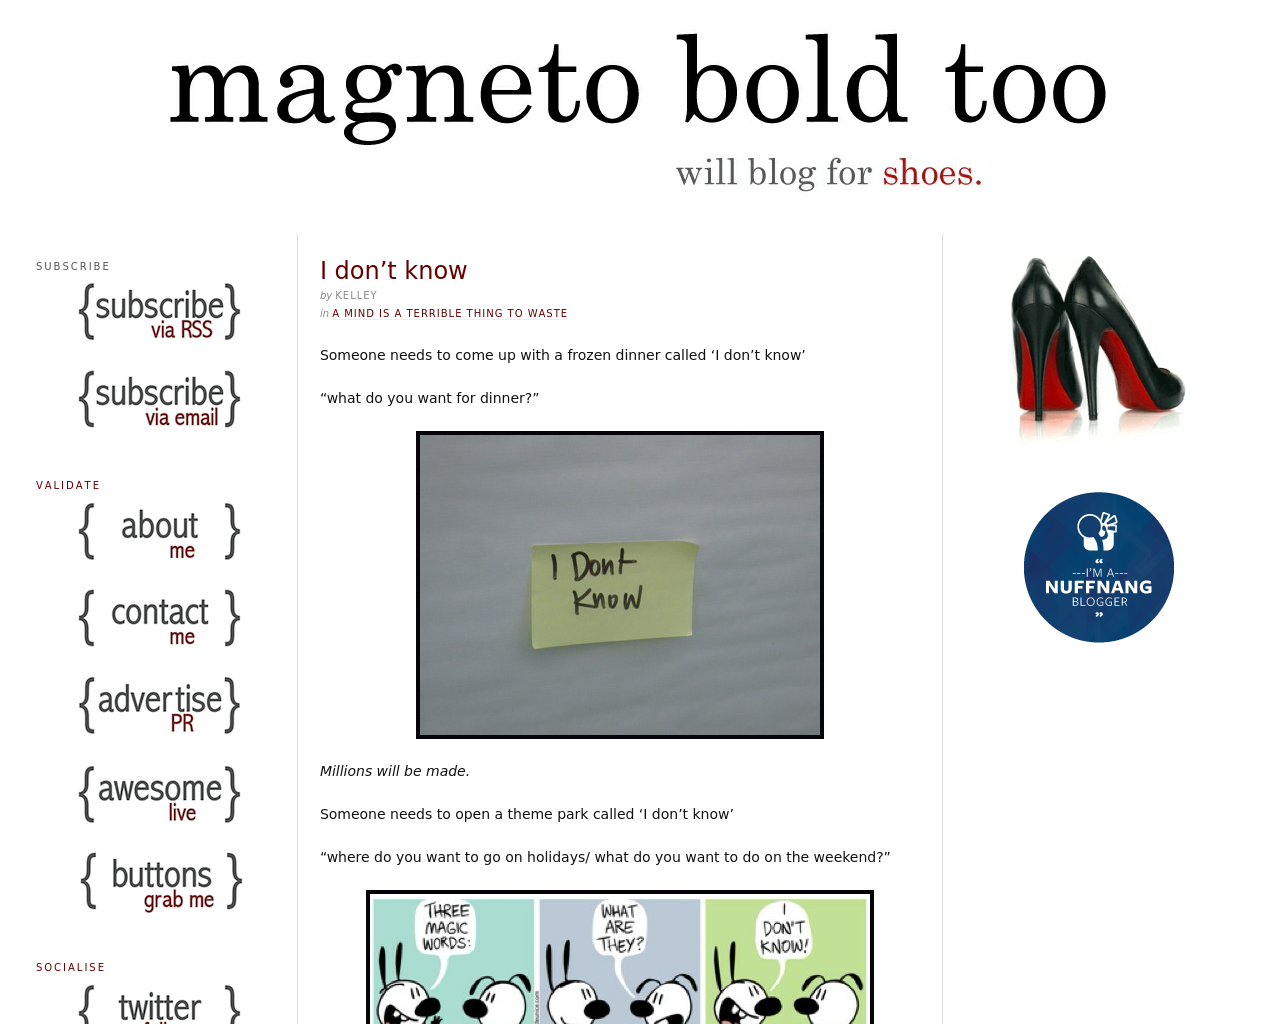 Magneto-bold-too-Advertising-Reviews-Pricing